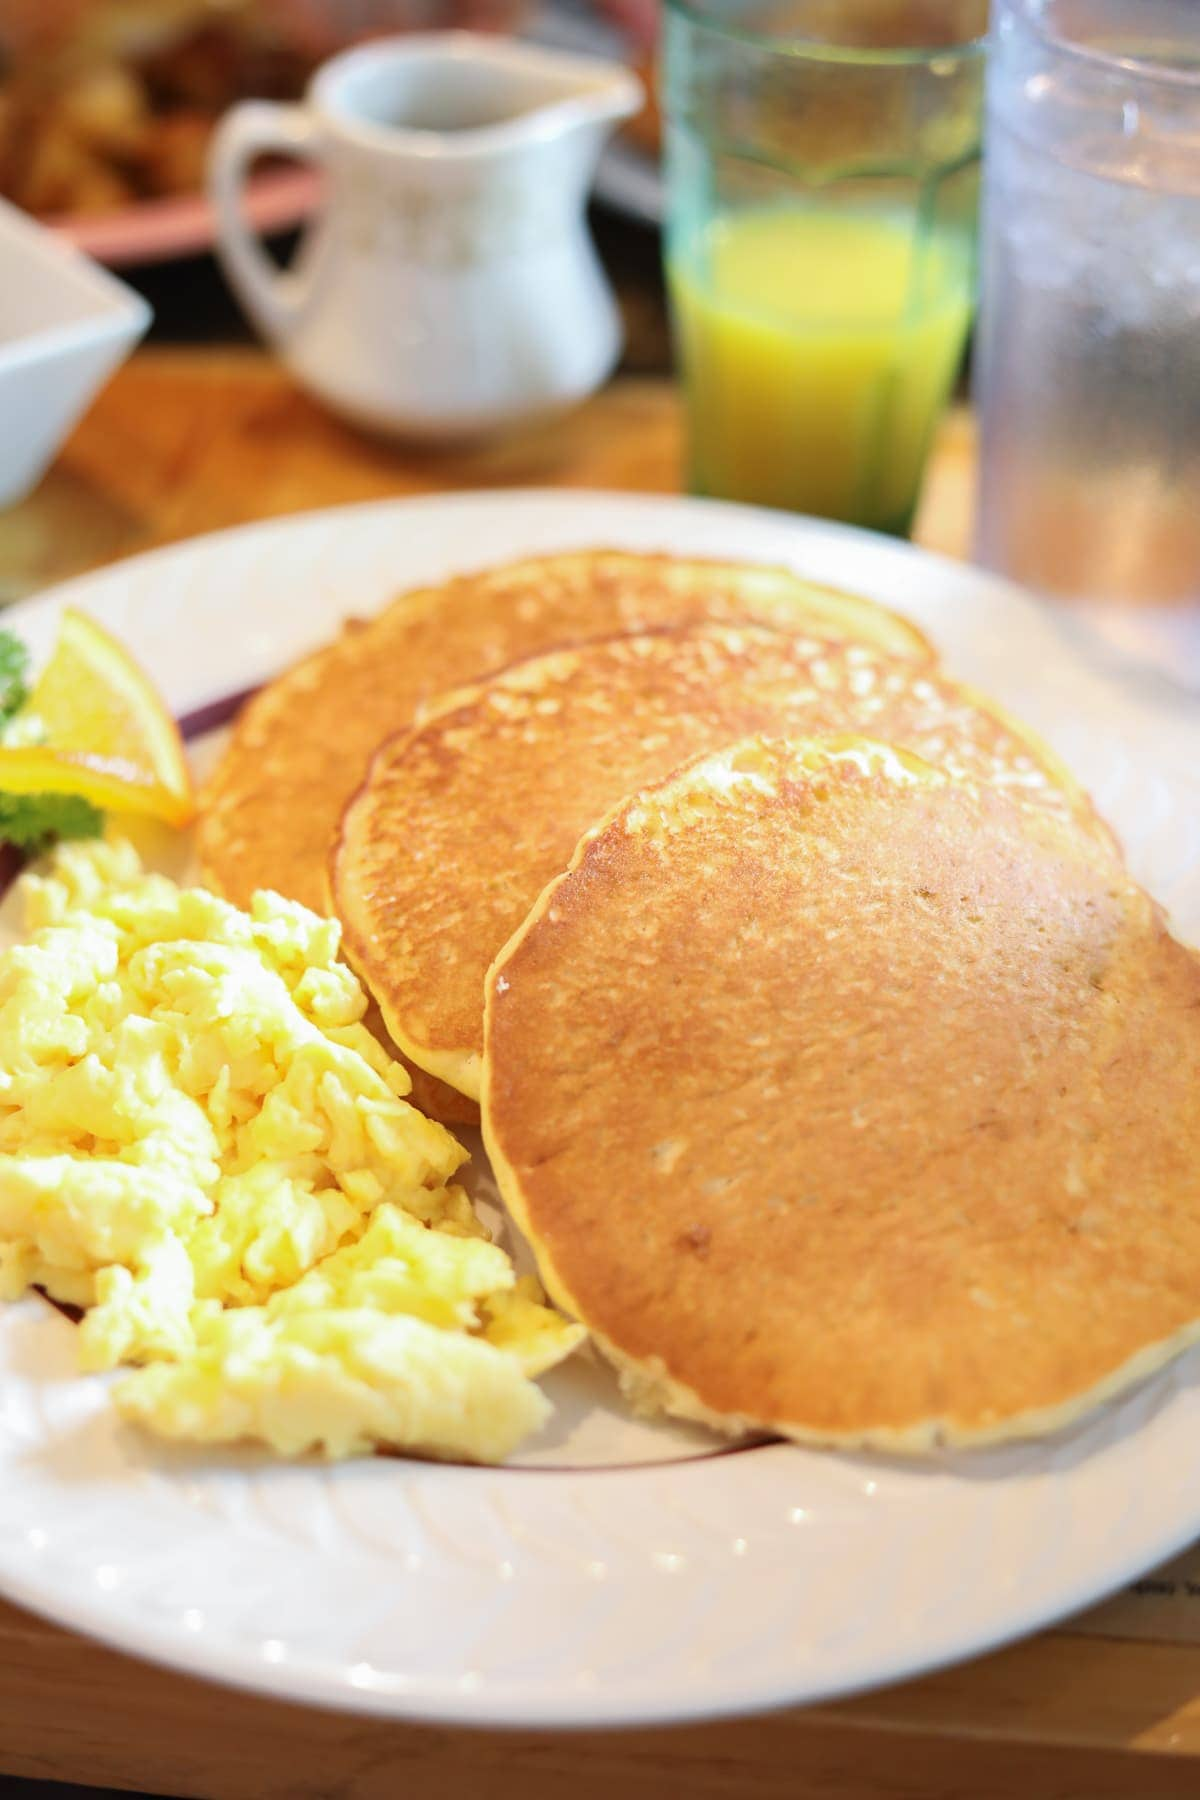 A plate of pancakes and eggs